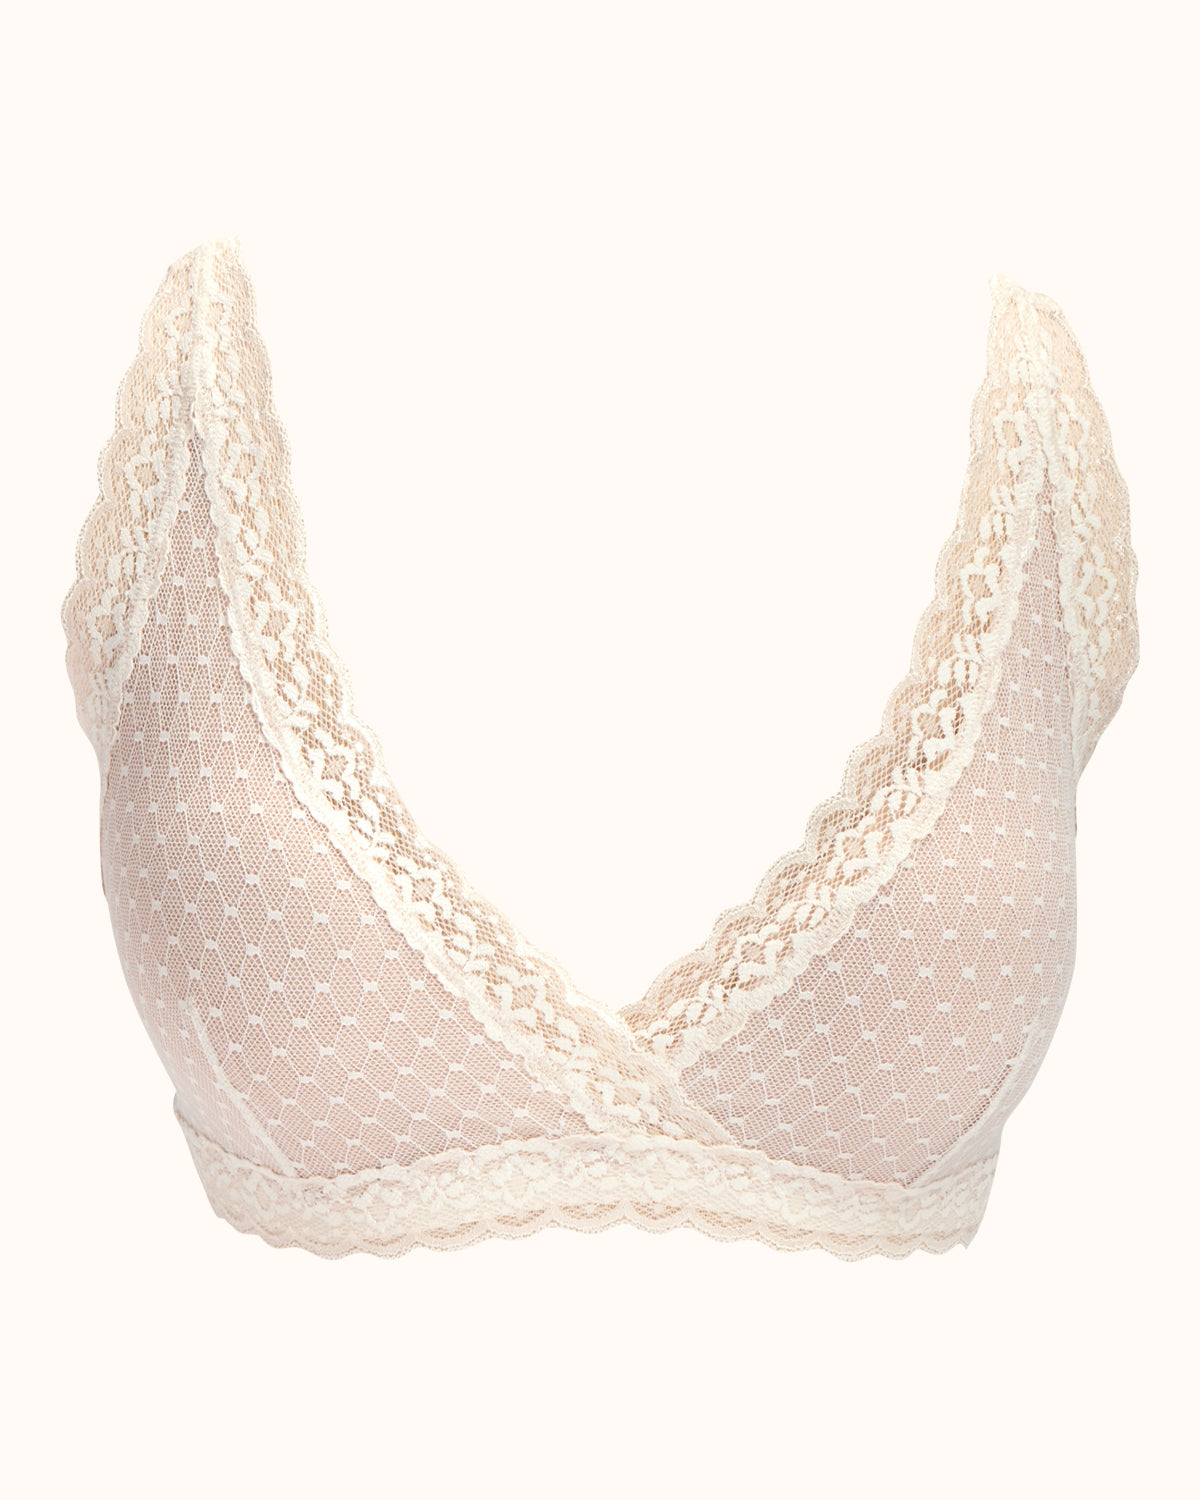 Susan Lace Mastectomy Bra